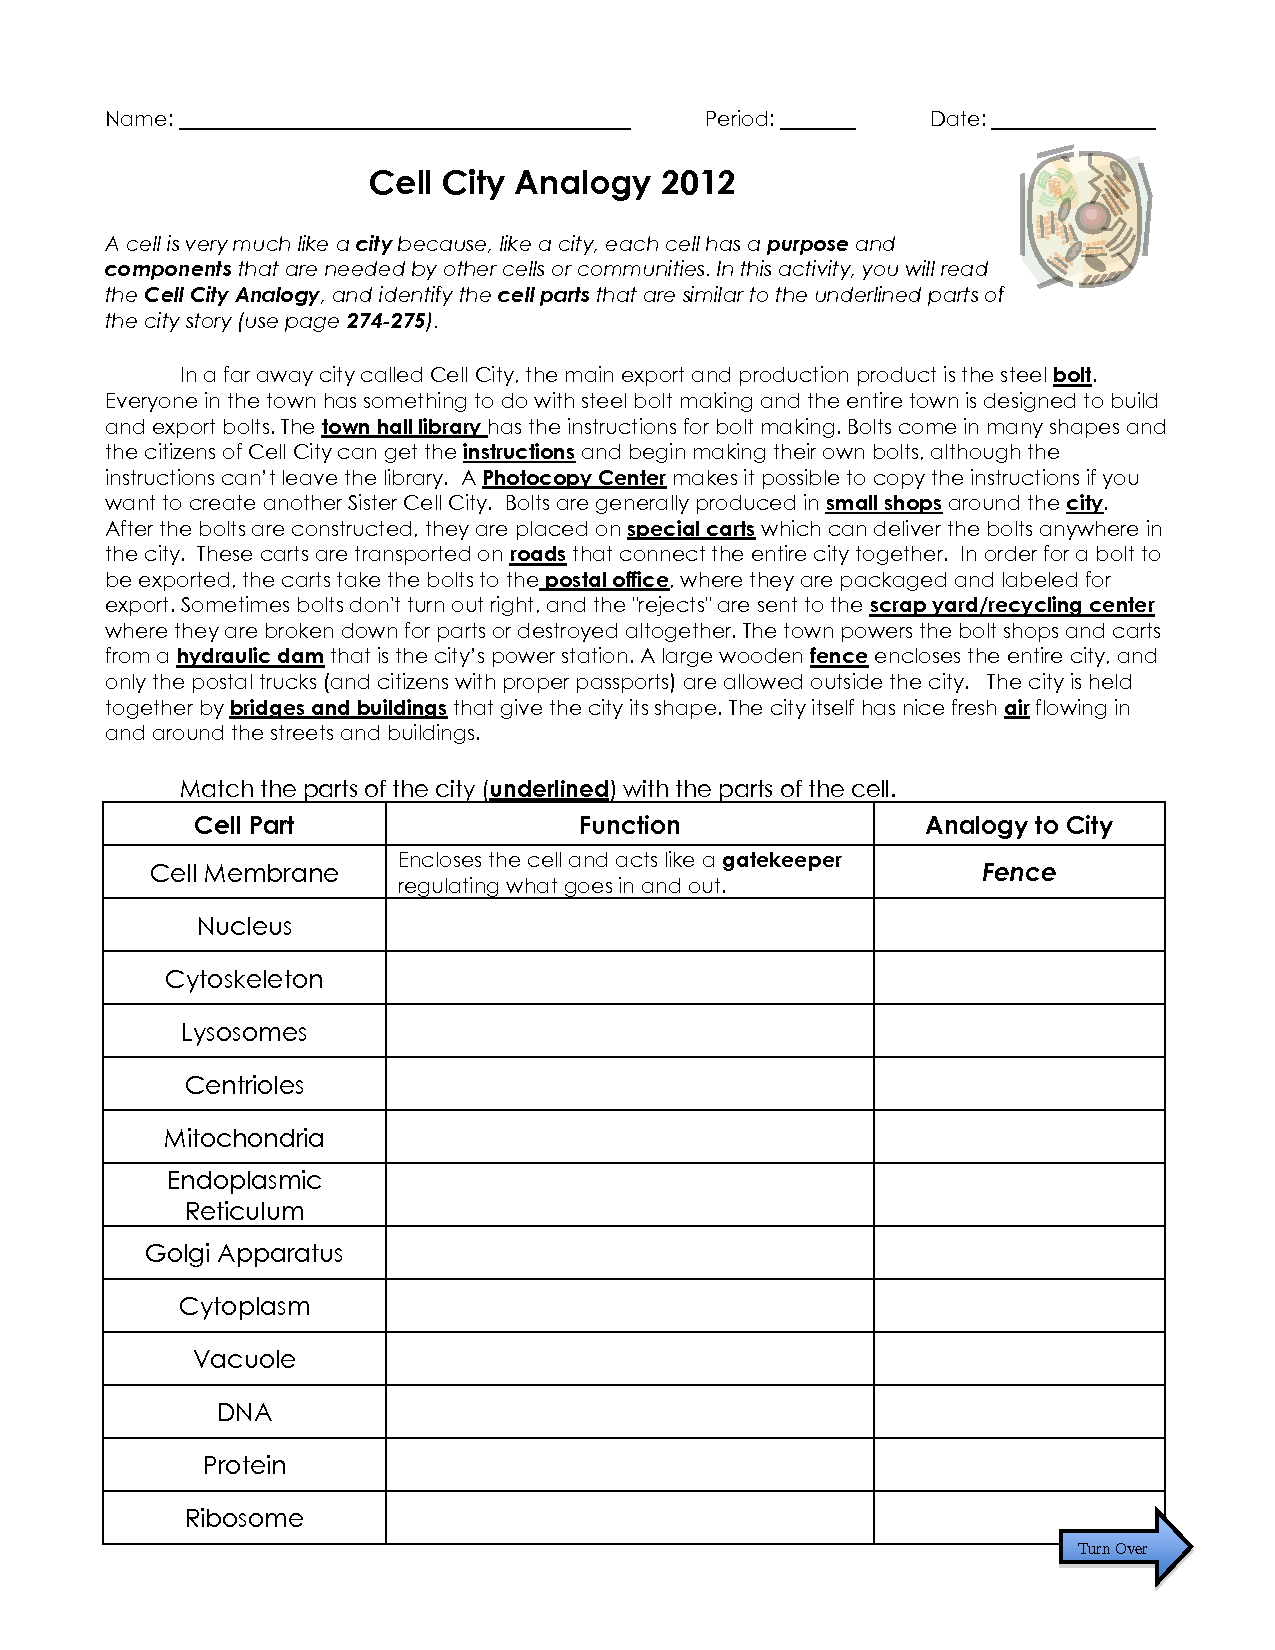 Cell City Analogy Worksheet 201815 Png 1275 1650 7th Grade Science Science Worksheets High School Science Experiments